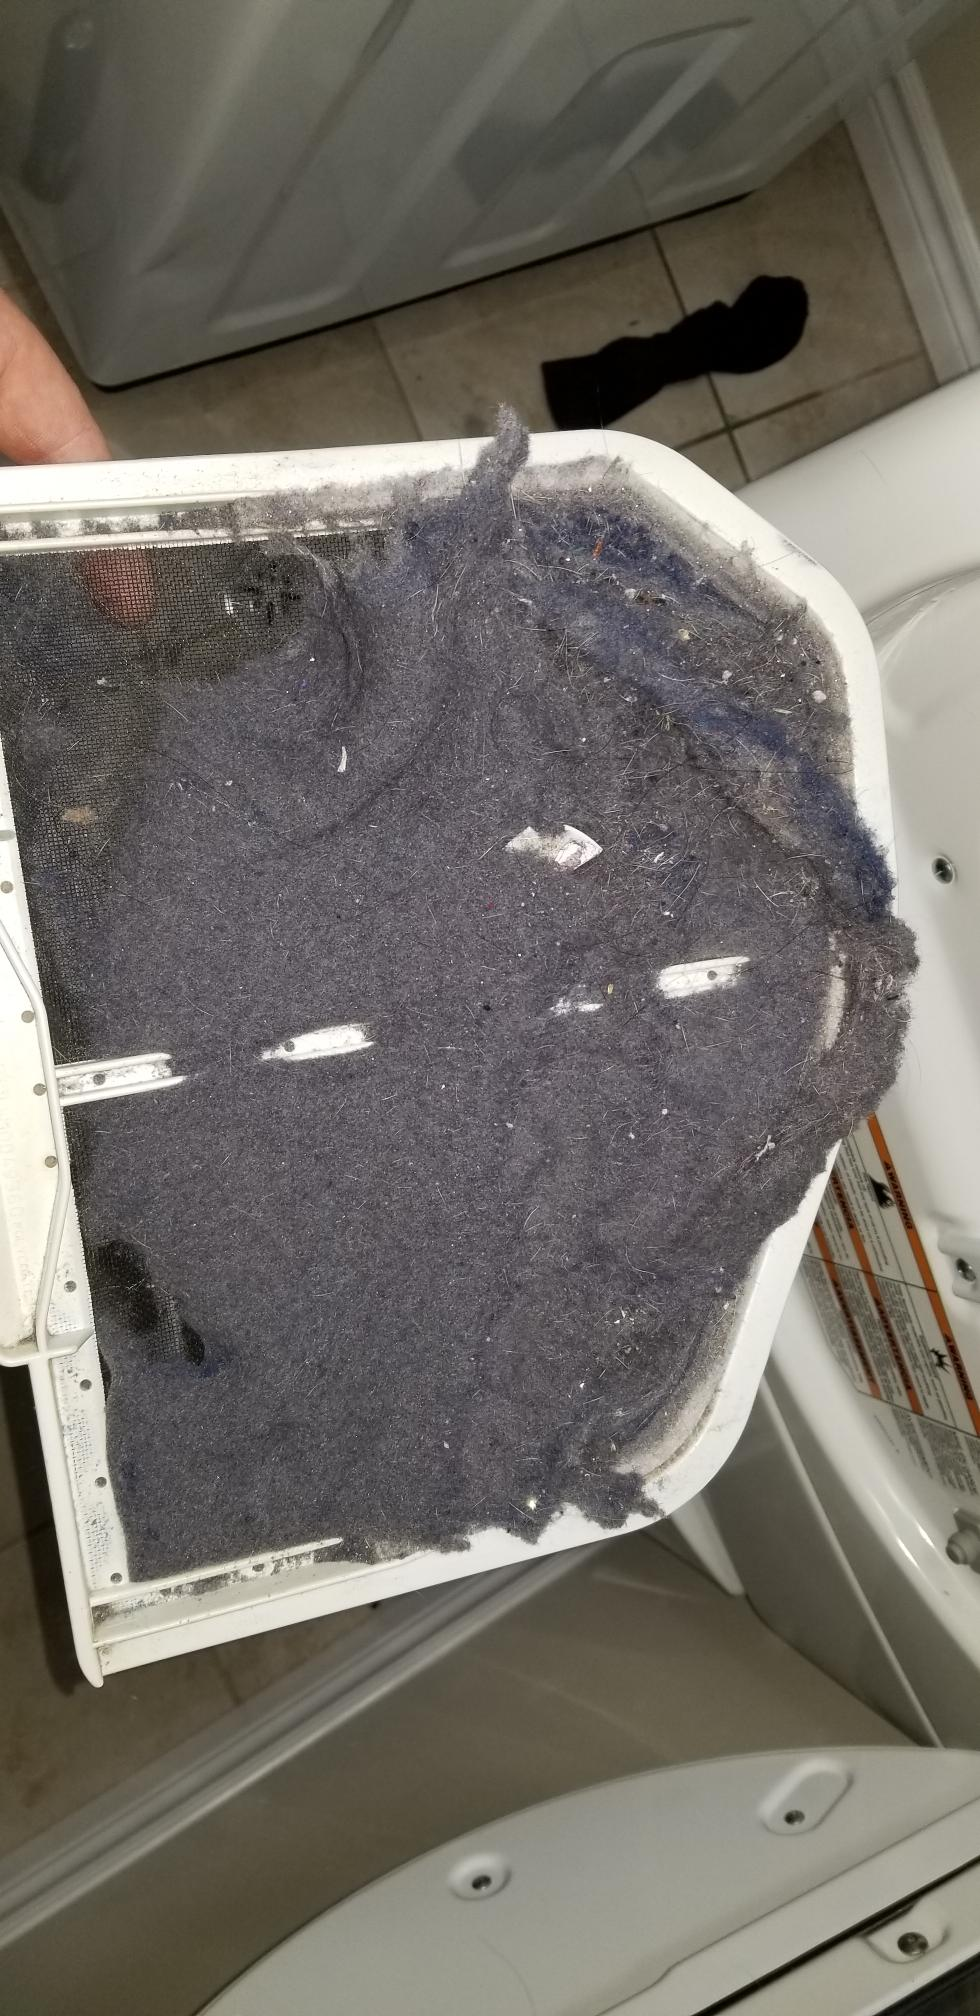 Dryer lint filter